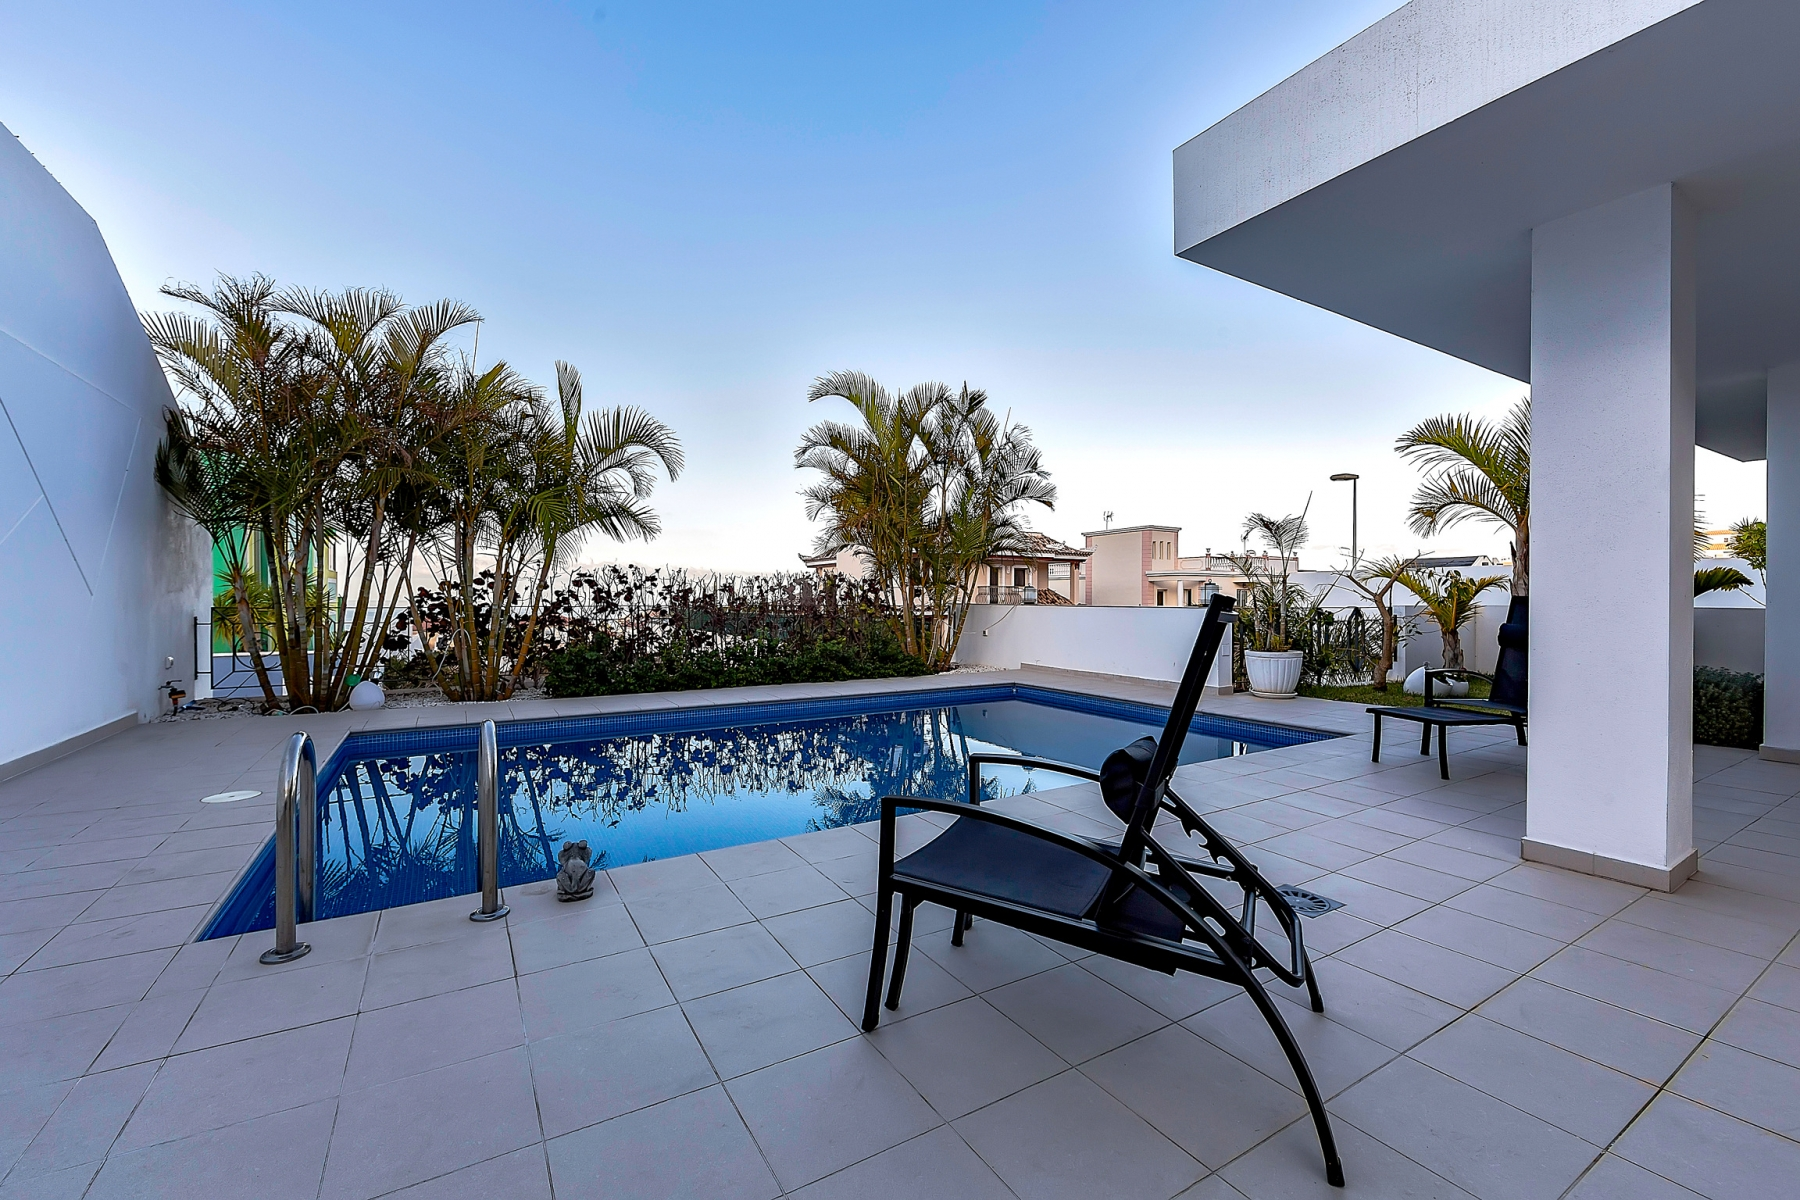 Properties for Sale in Tenerife, Canary Islands, Spain   SylkWayStar Real Estate. Luxury villa in the fashionable area of the south of the island of Tenerife – Madroñal.. Image-22829